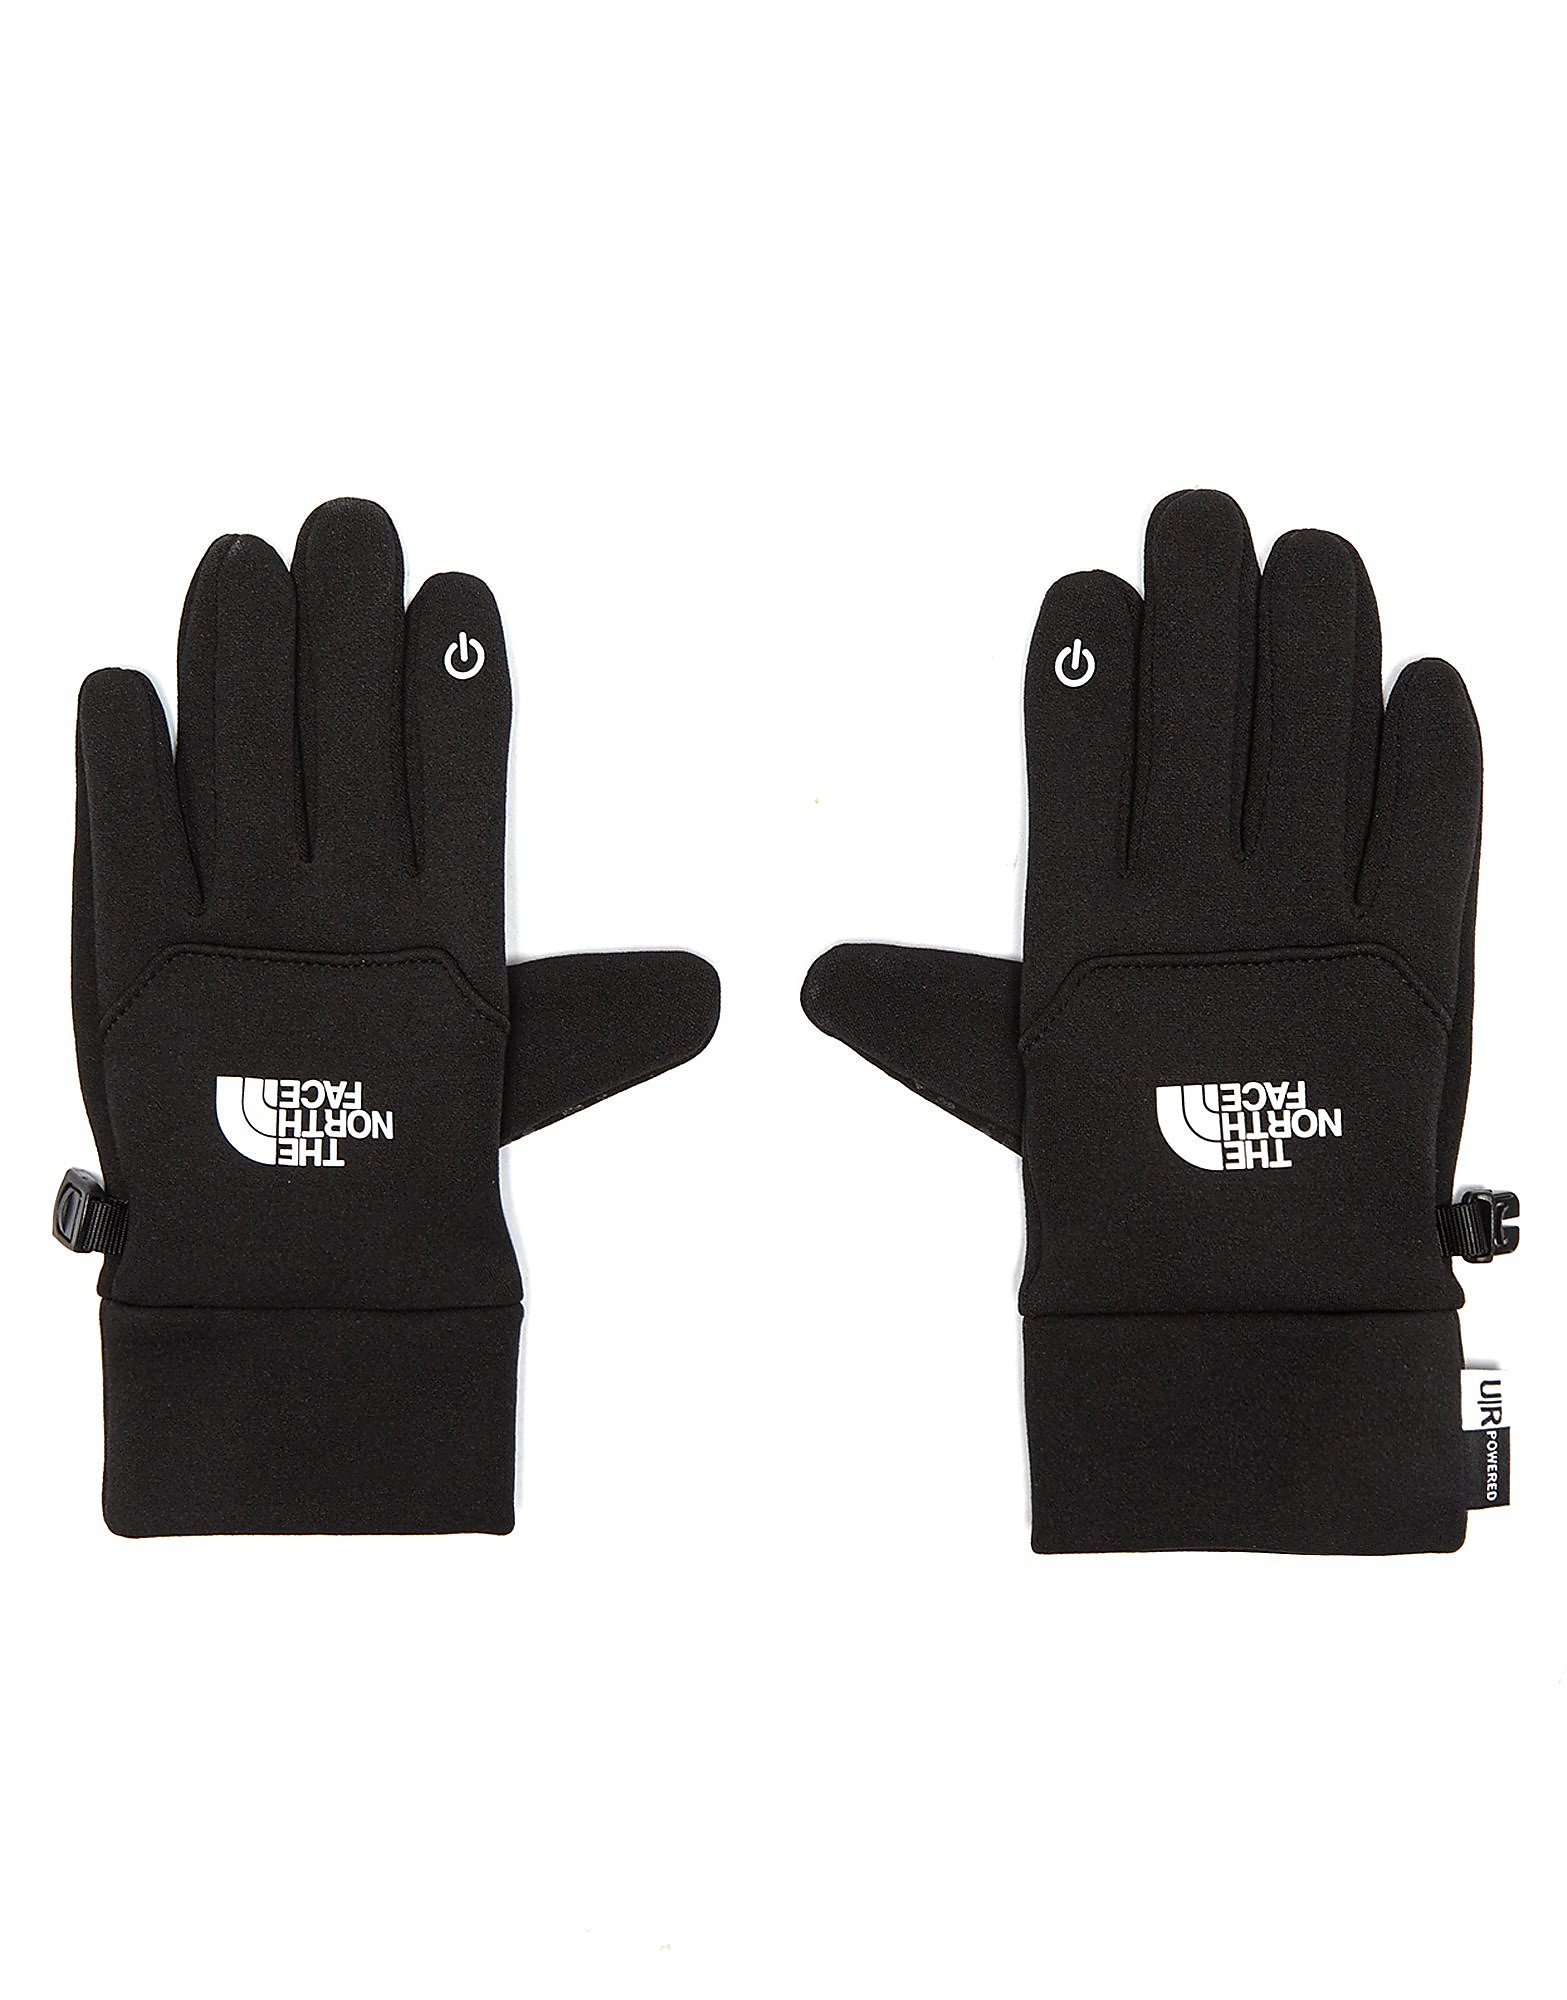 The North Face Etip Handschuhe für Kinder